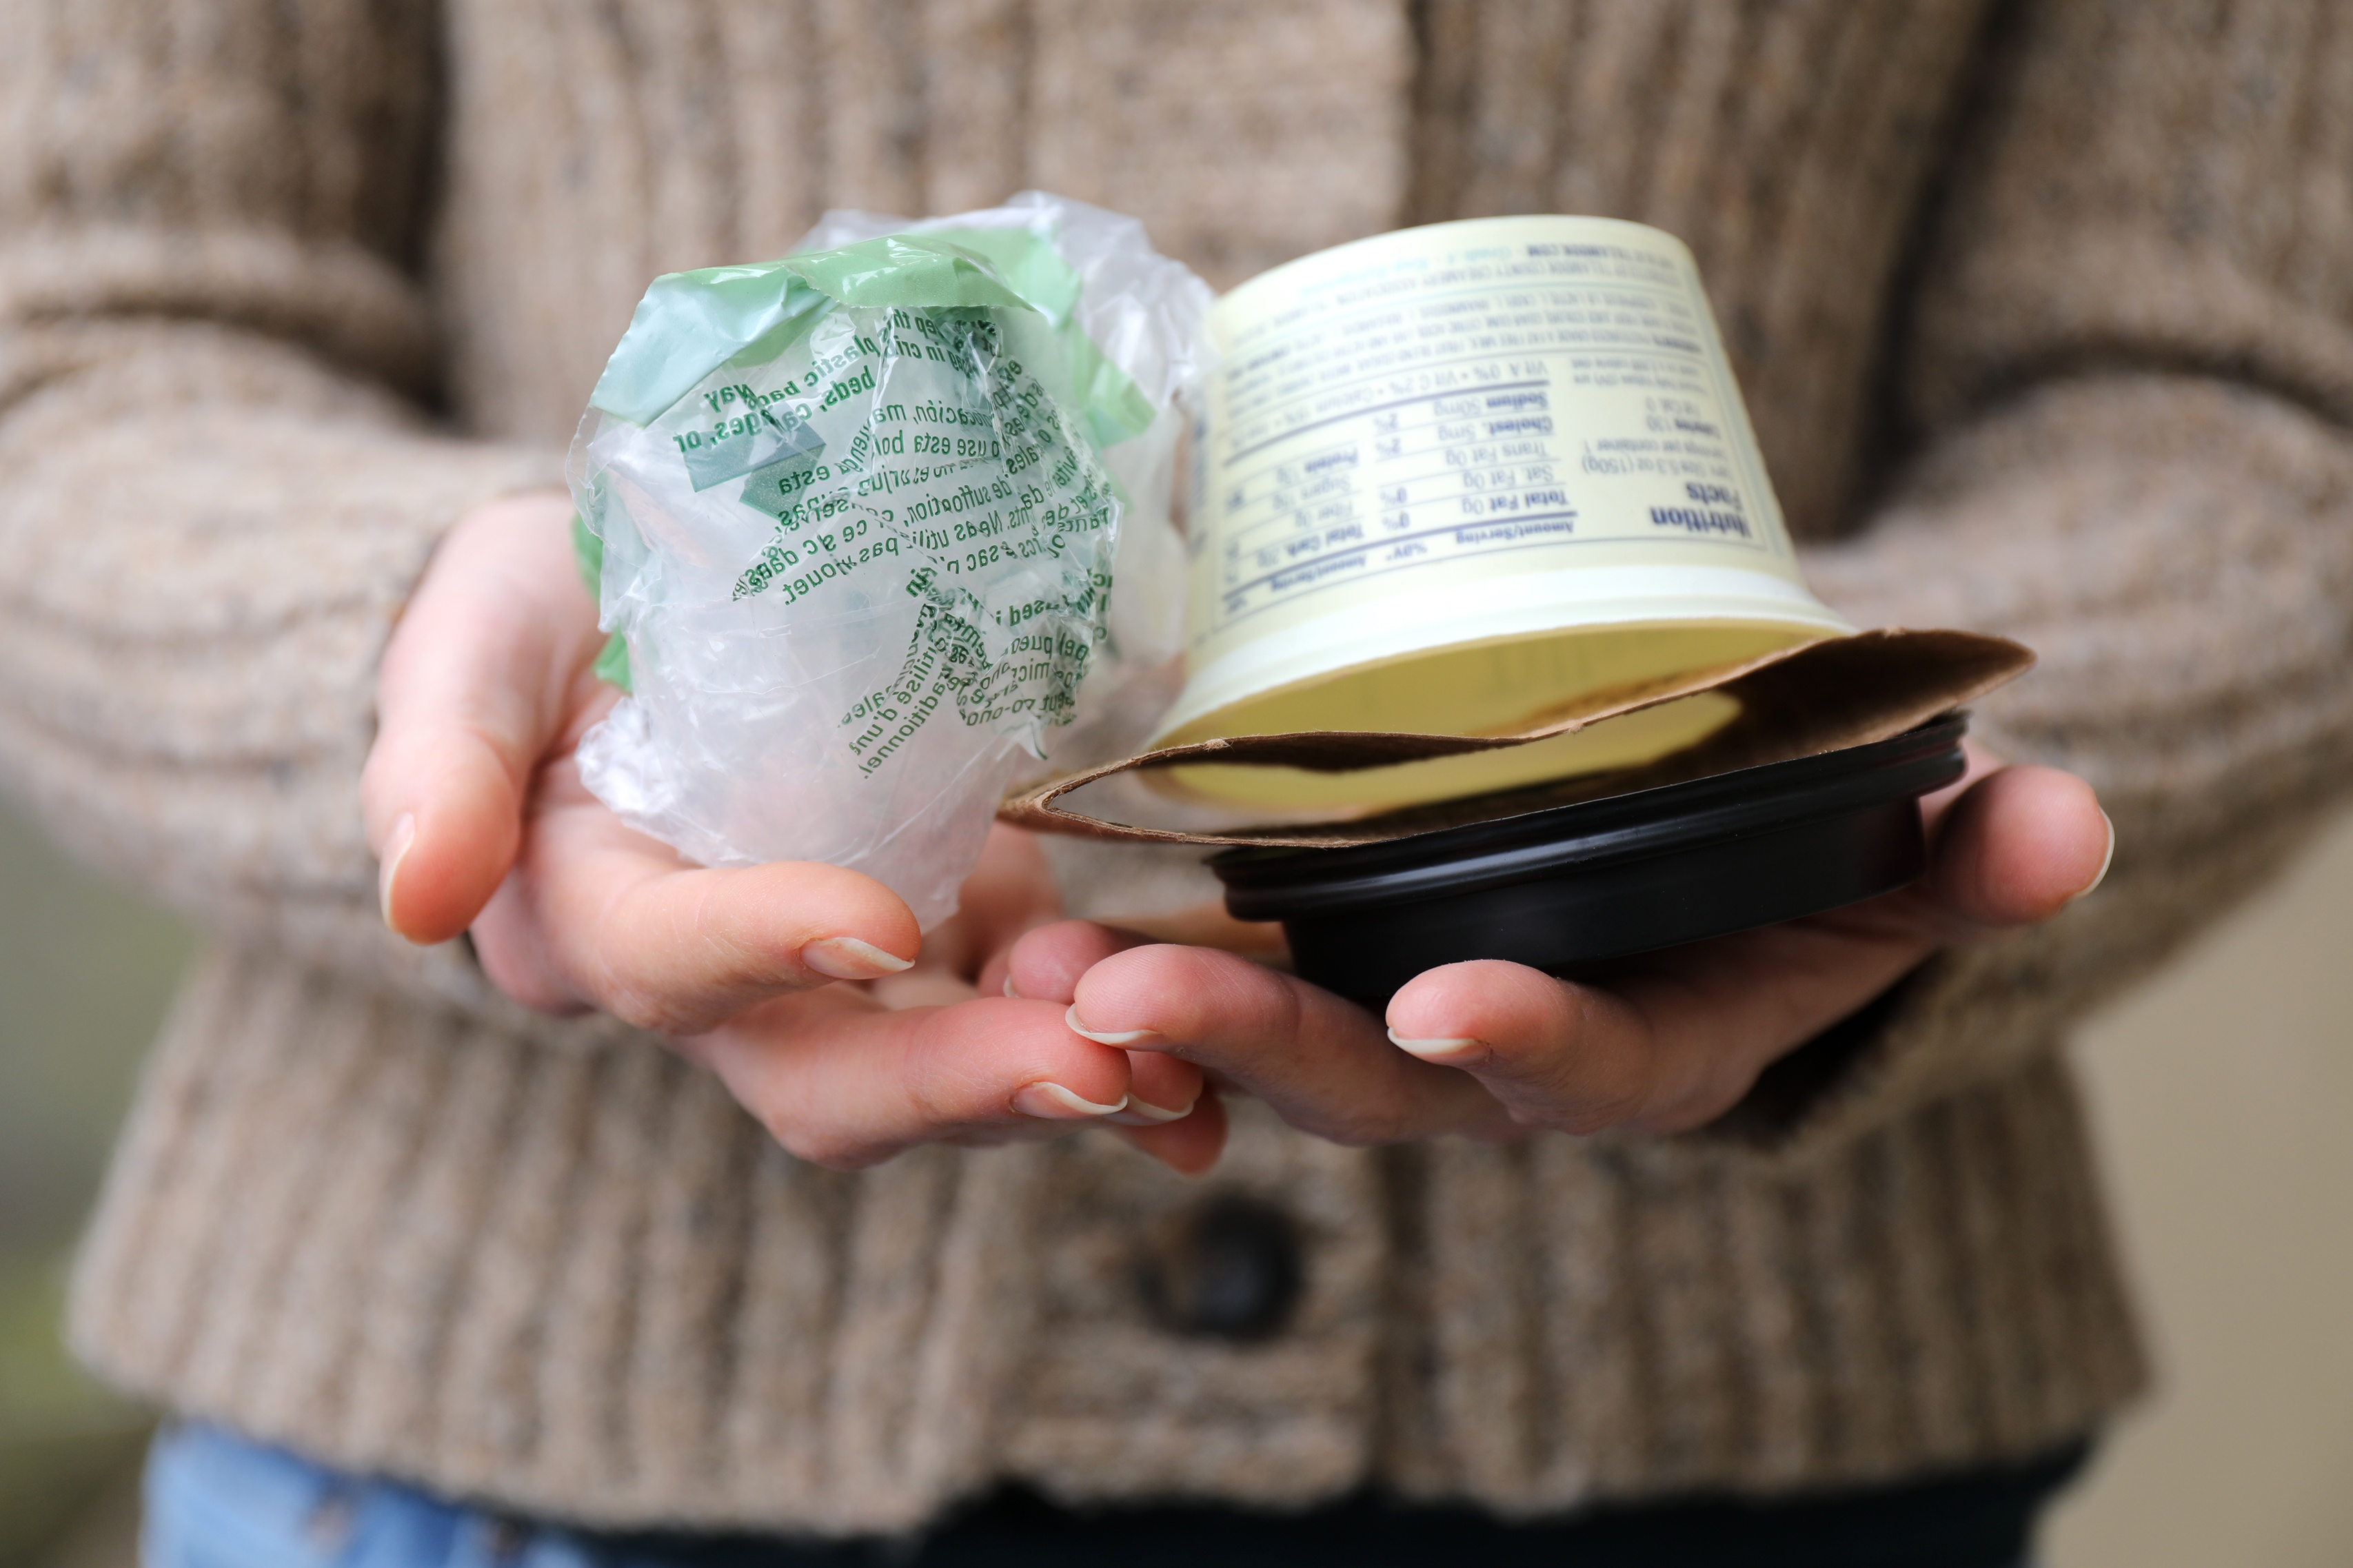 Hands holding plastic grocery bag and yogurt container and coffee holder in palm of hands